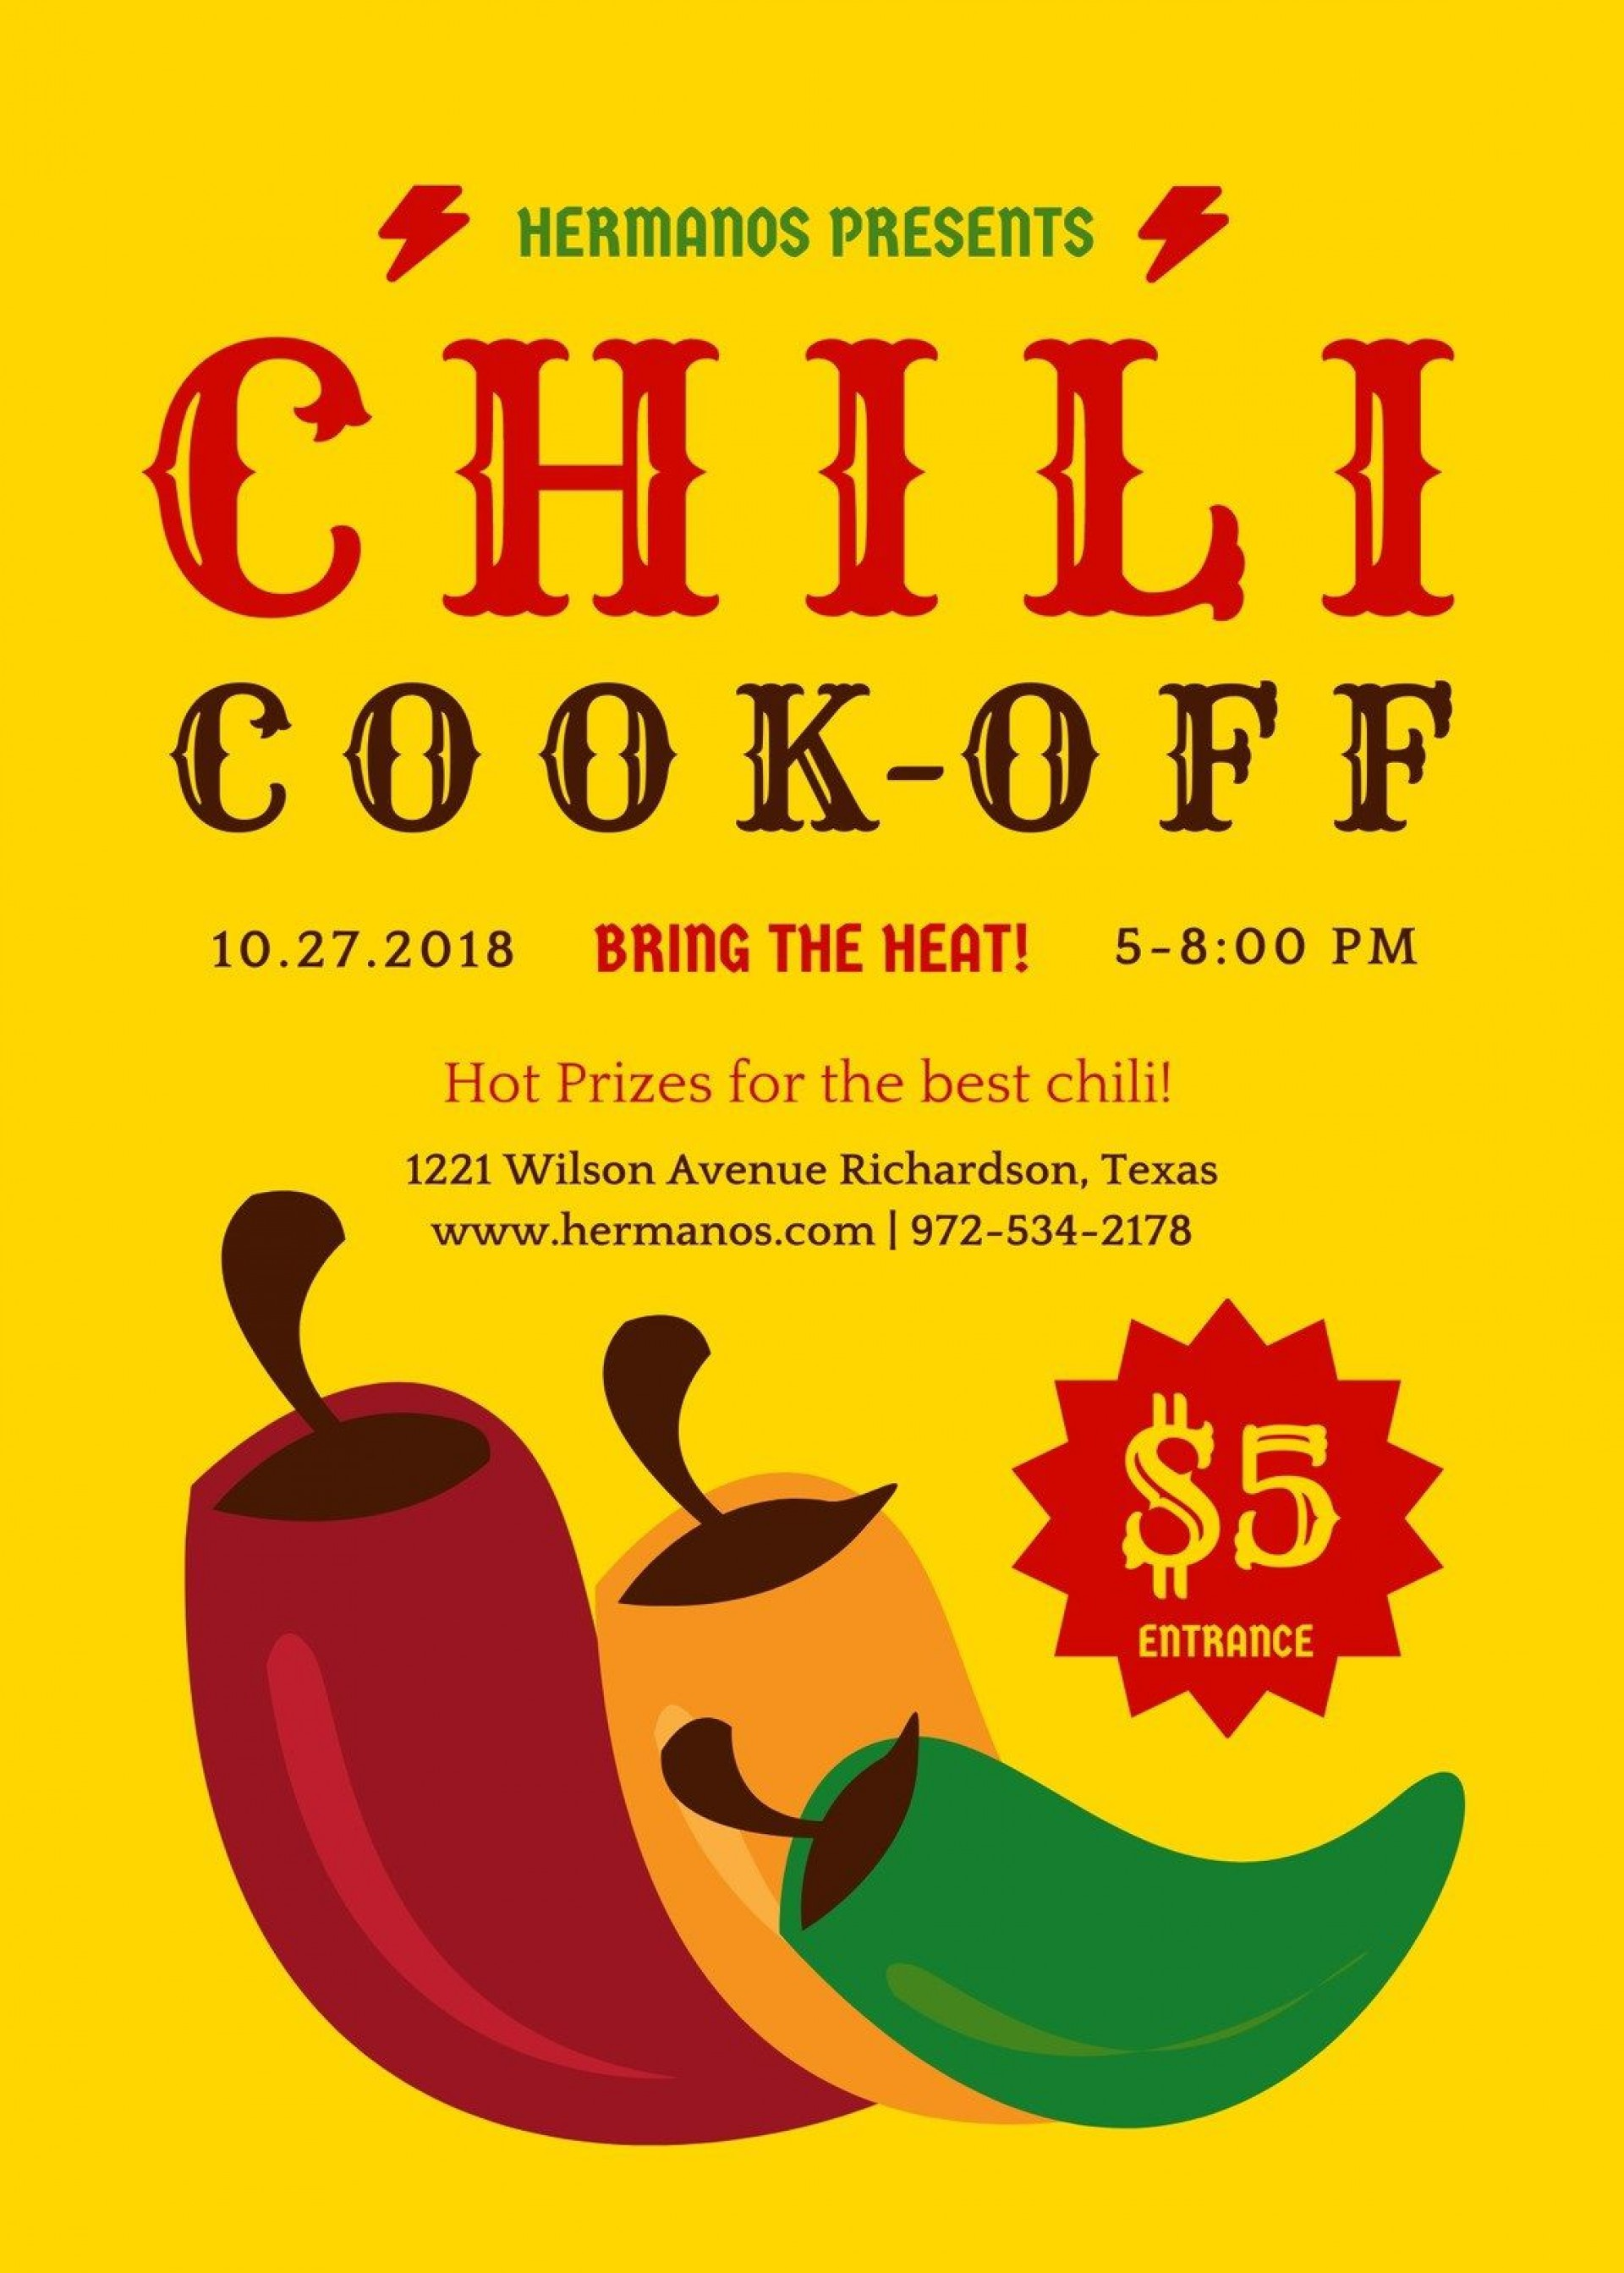 008 Excellent Chili Cook Off Flyer Template Example  Halloween Office Powerpoint1920